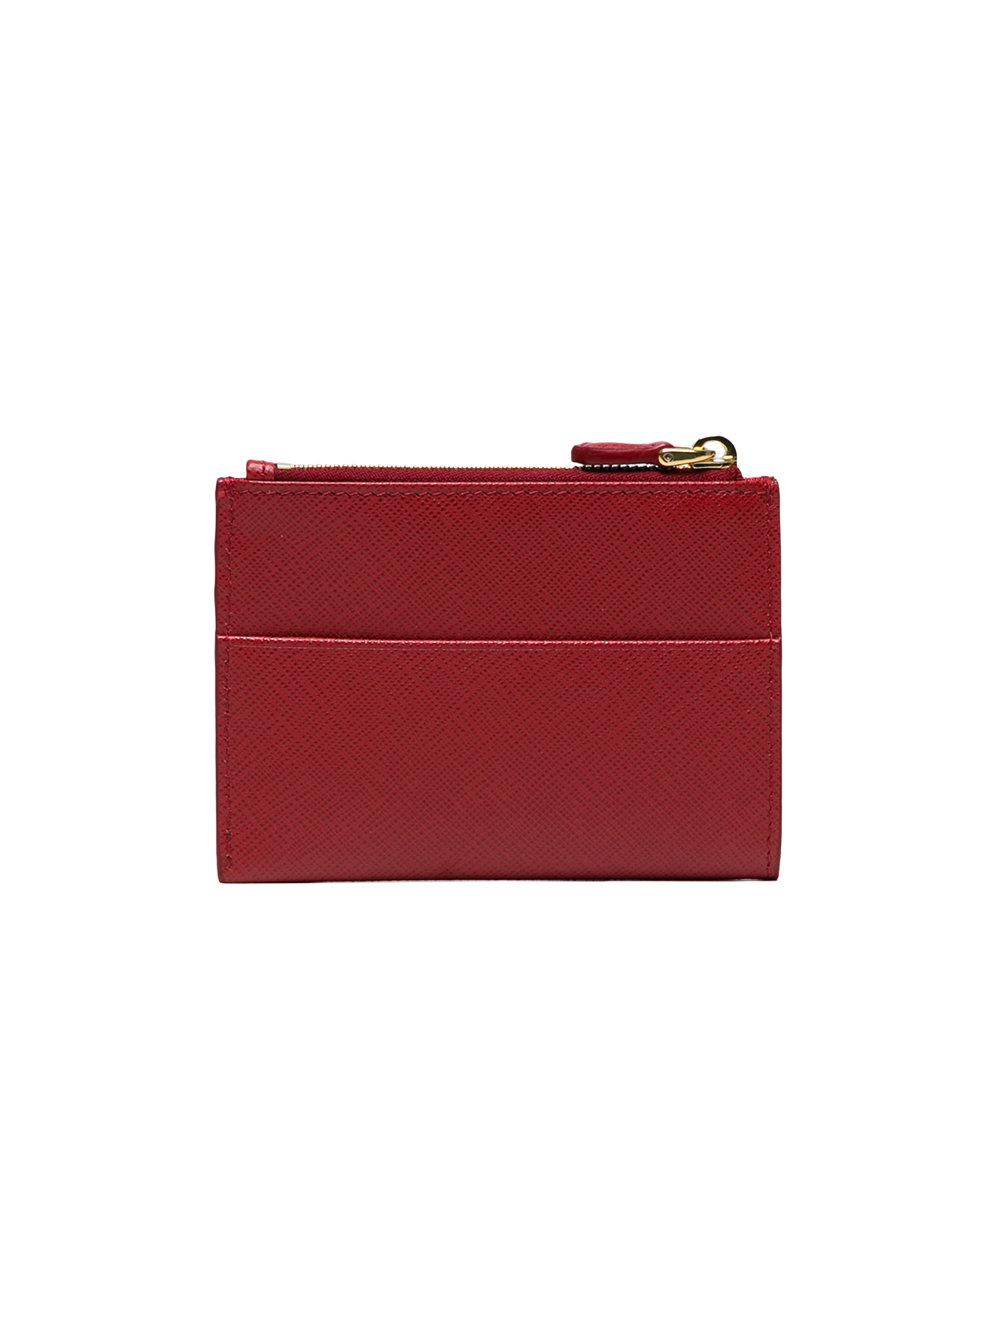 3960466a40a7 Prada - Red Saffiano Leather Cardholder - Lyst. View fullscreen